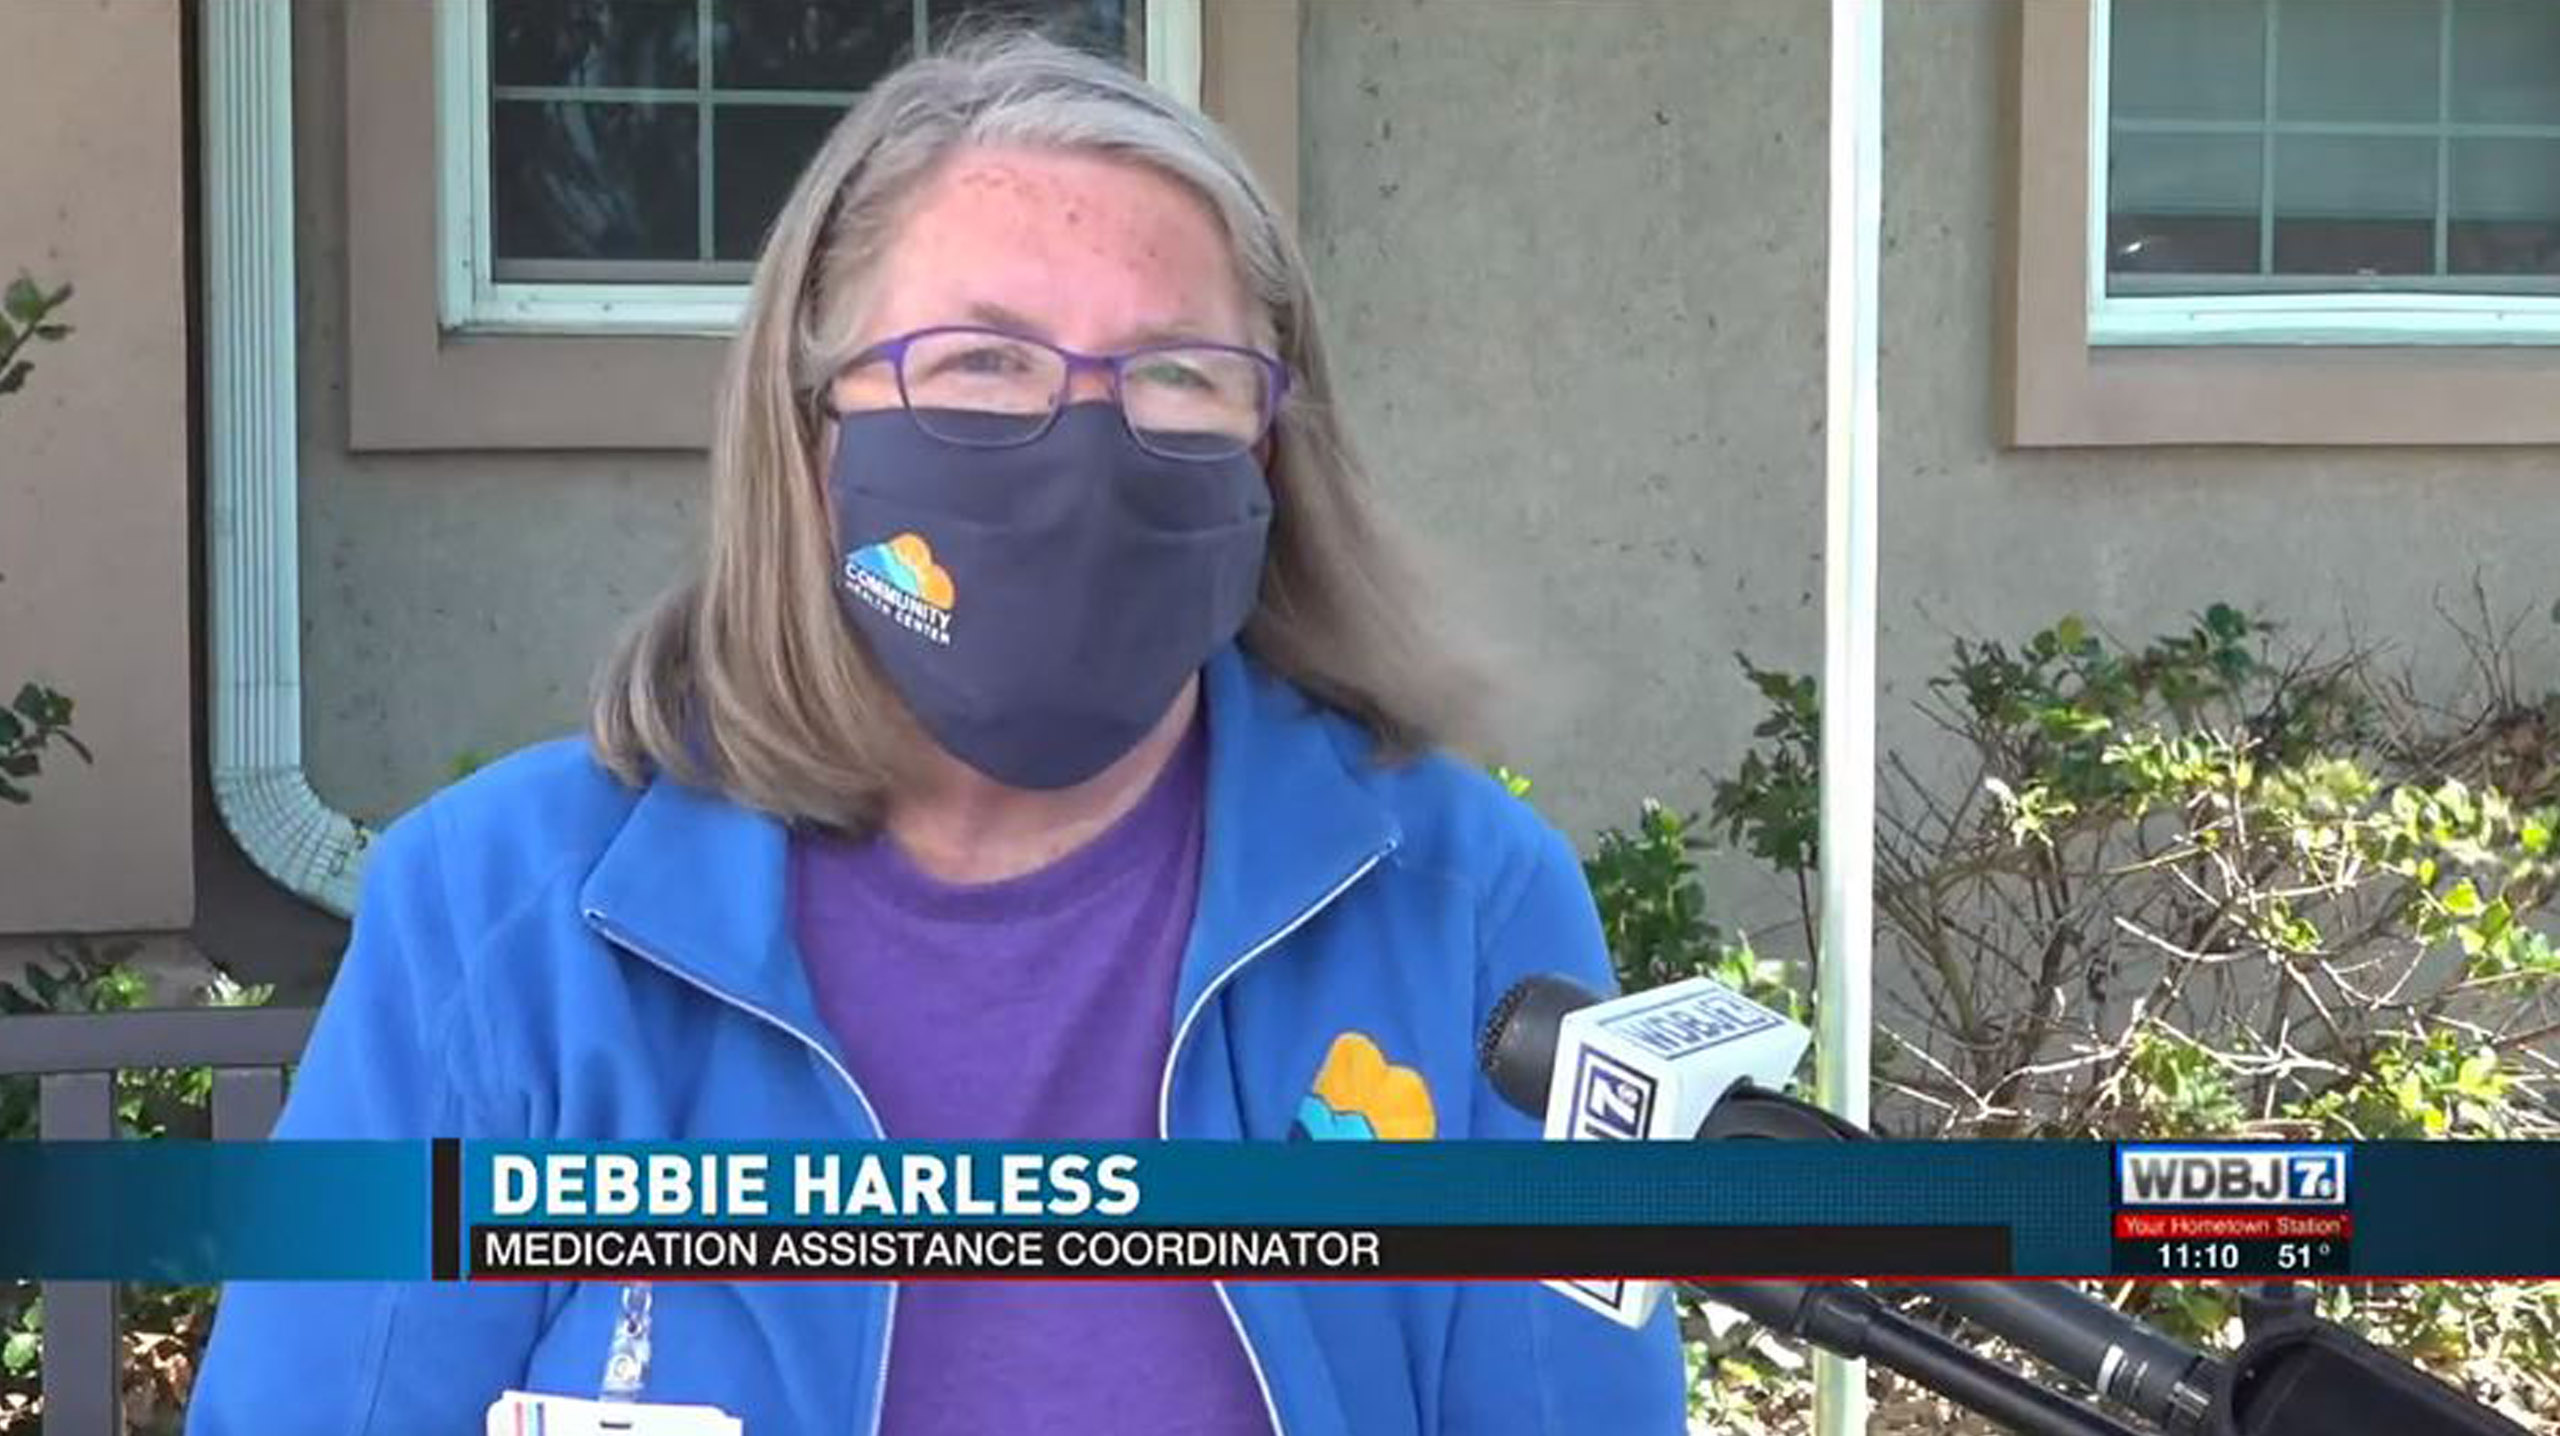 Screenshot from news interview with Debbie Harless from Community Health Center of the New RIver Valley